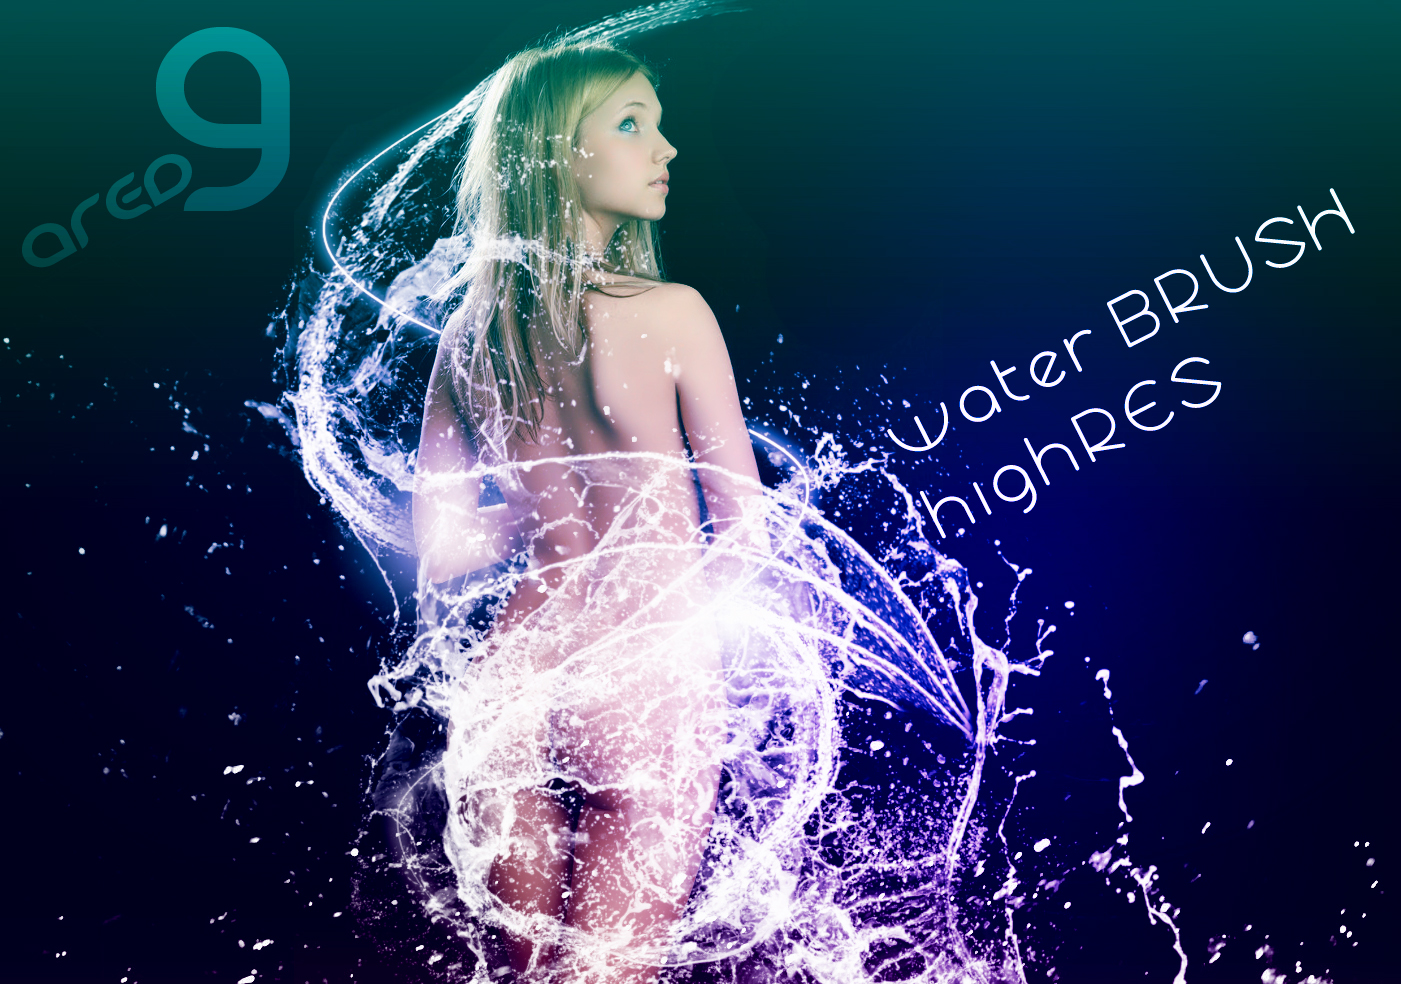 Water Effects Photoshop Brushes Photoshop Water Effect Brushes